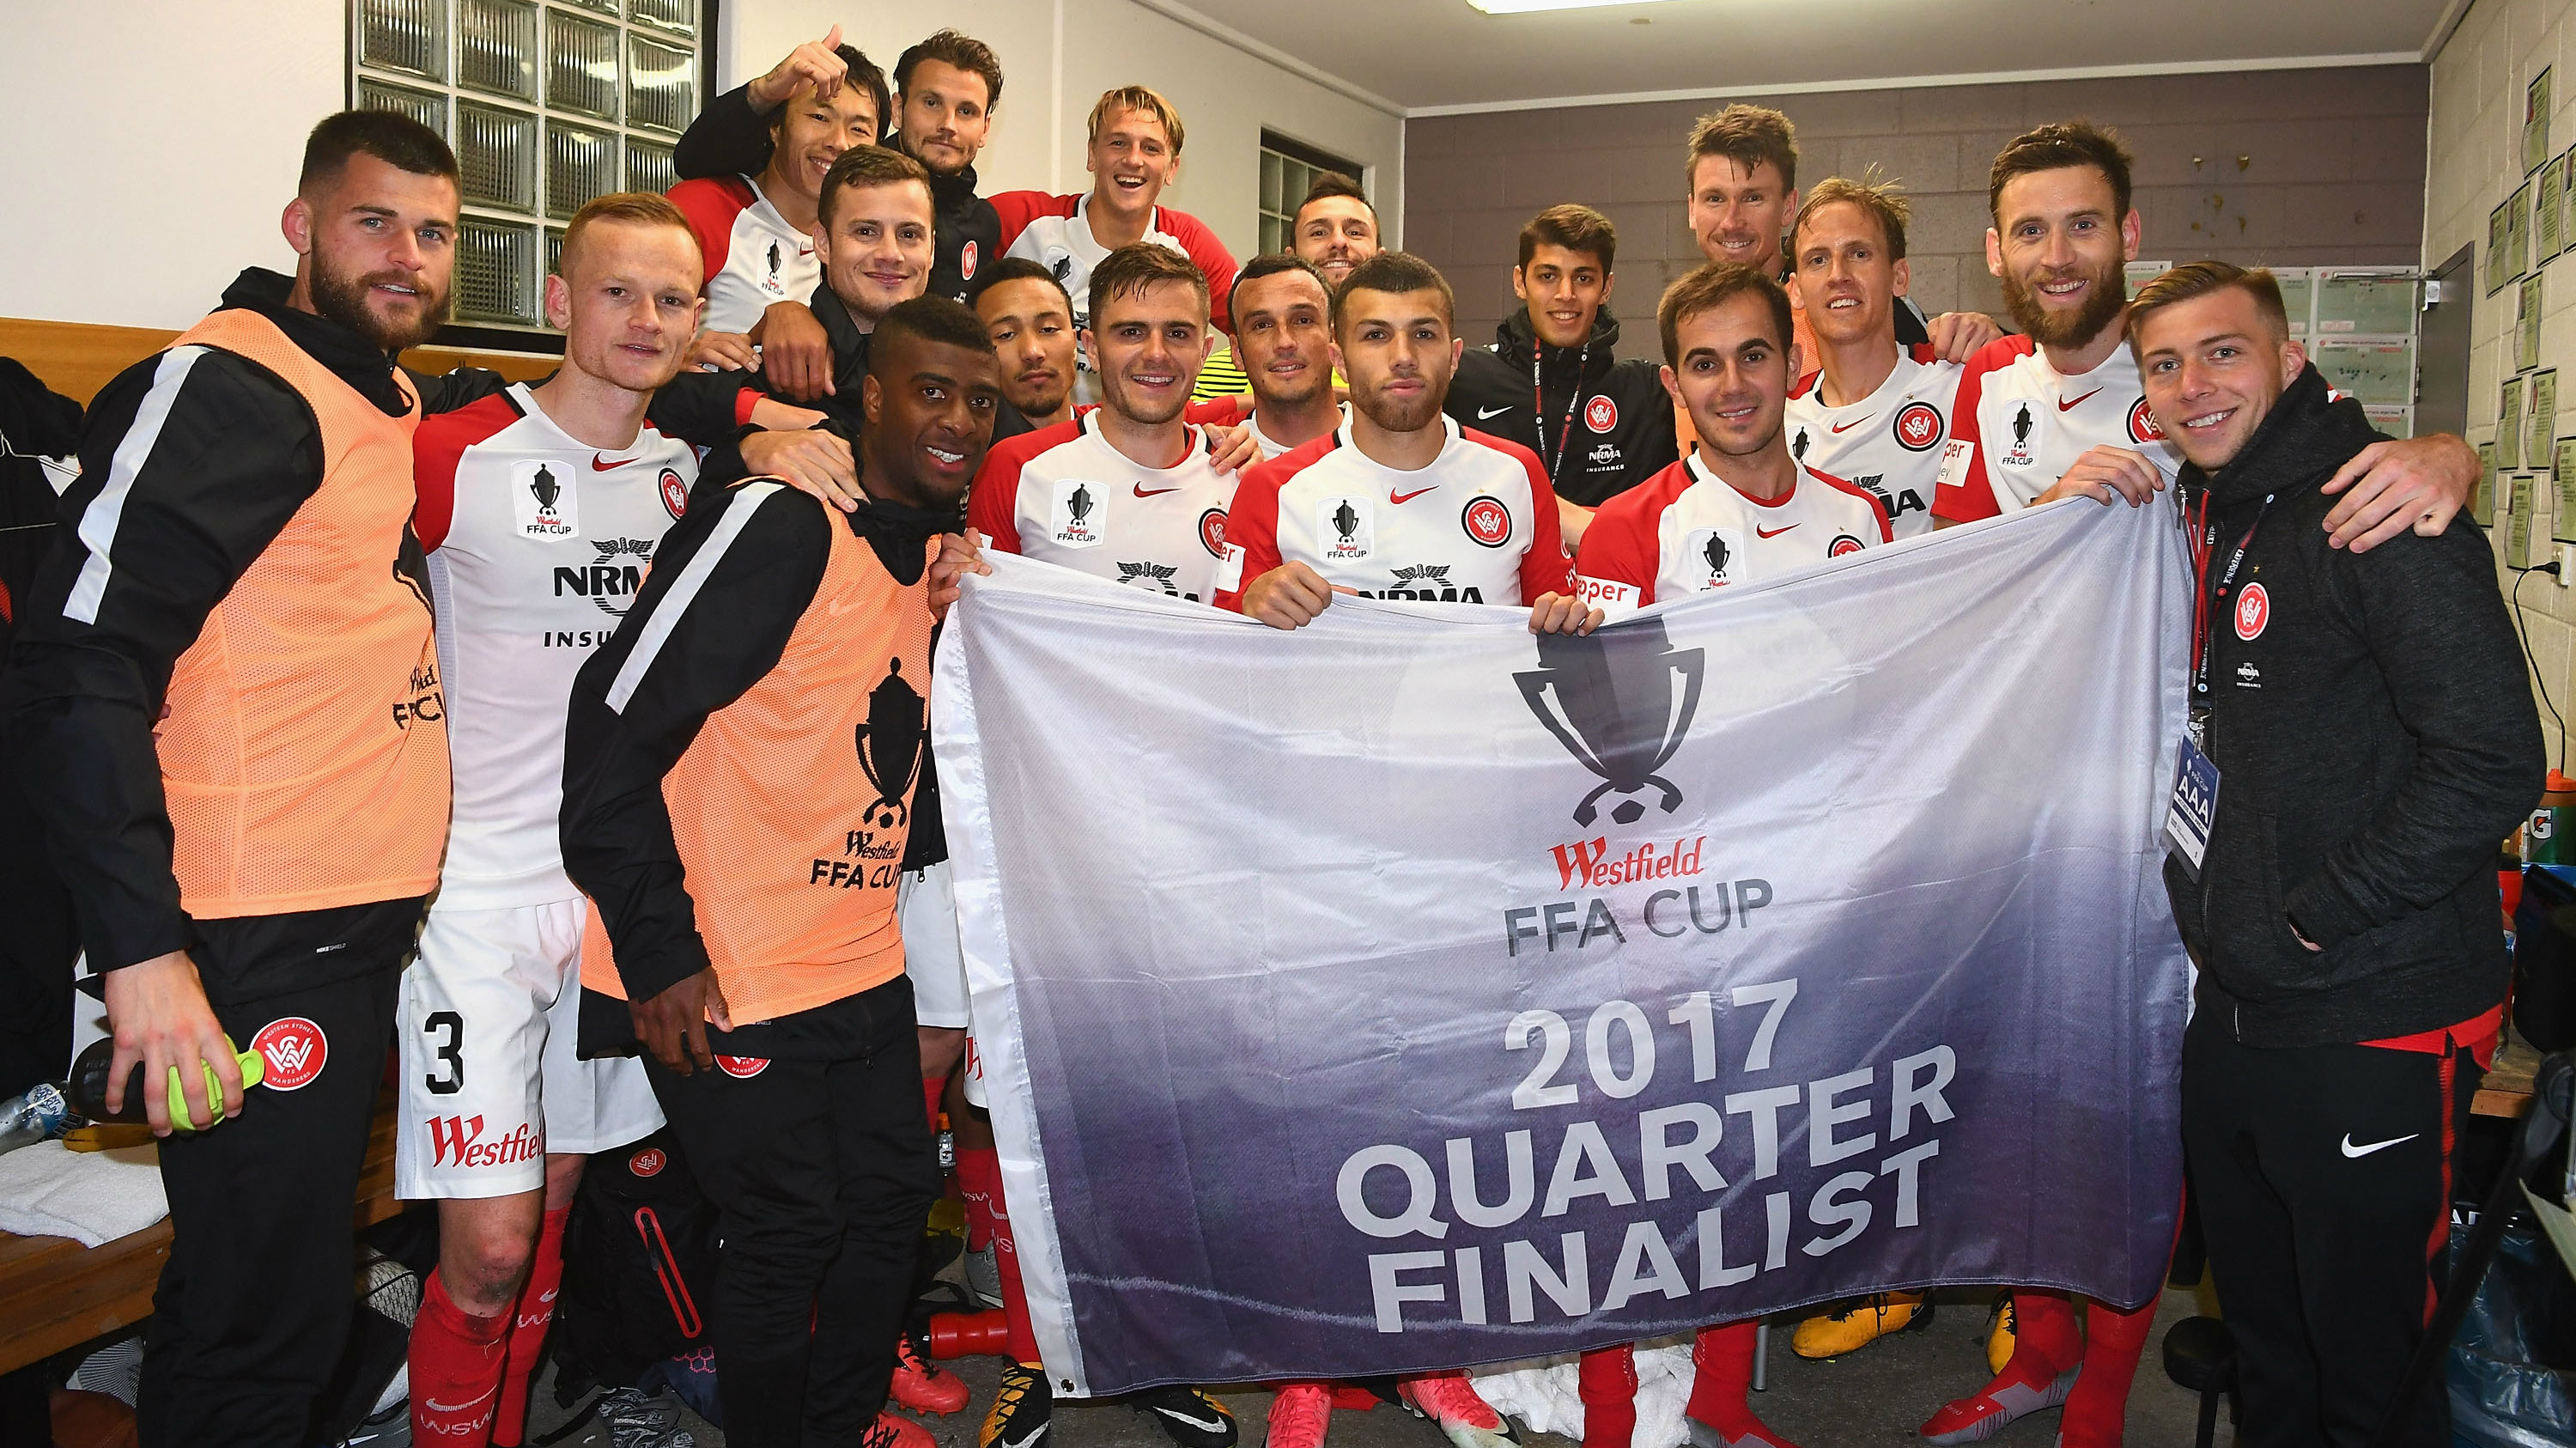 Wanderers players celebrate progressing to the FFA Cup Quarter Finals.